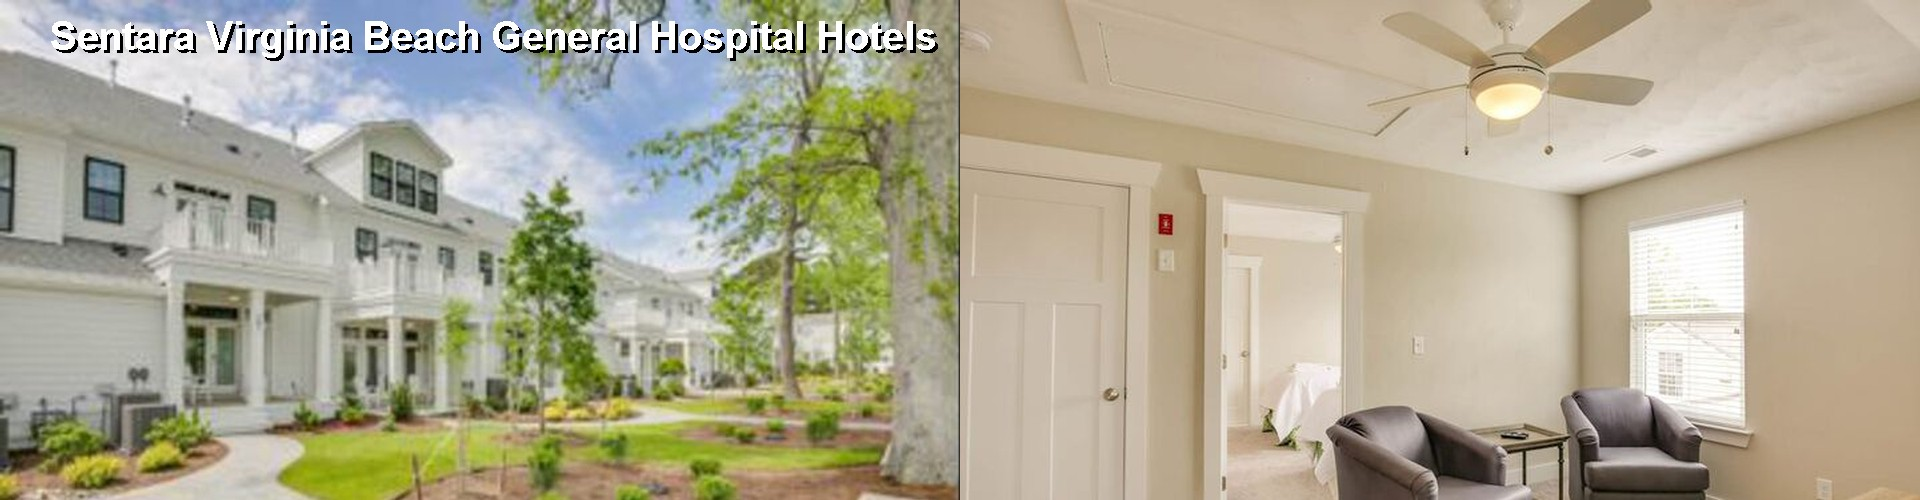 5 Best Hotels near Sentara Virginia Beach General Hospital